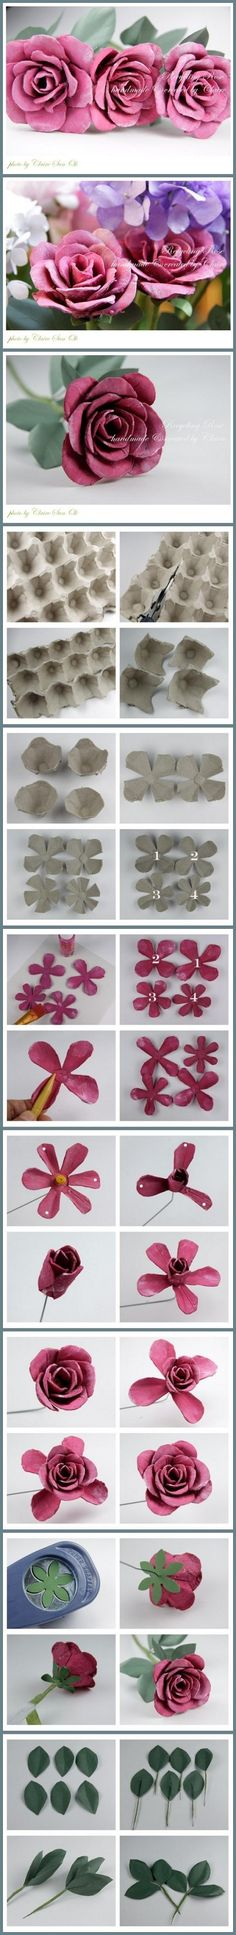 How to recycle Egg packing Boxes into beautiful rose flowers step by step DIY tutorial instructions , How to, how to do, diy instructions, c by Mary Smith fSesz